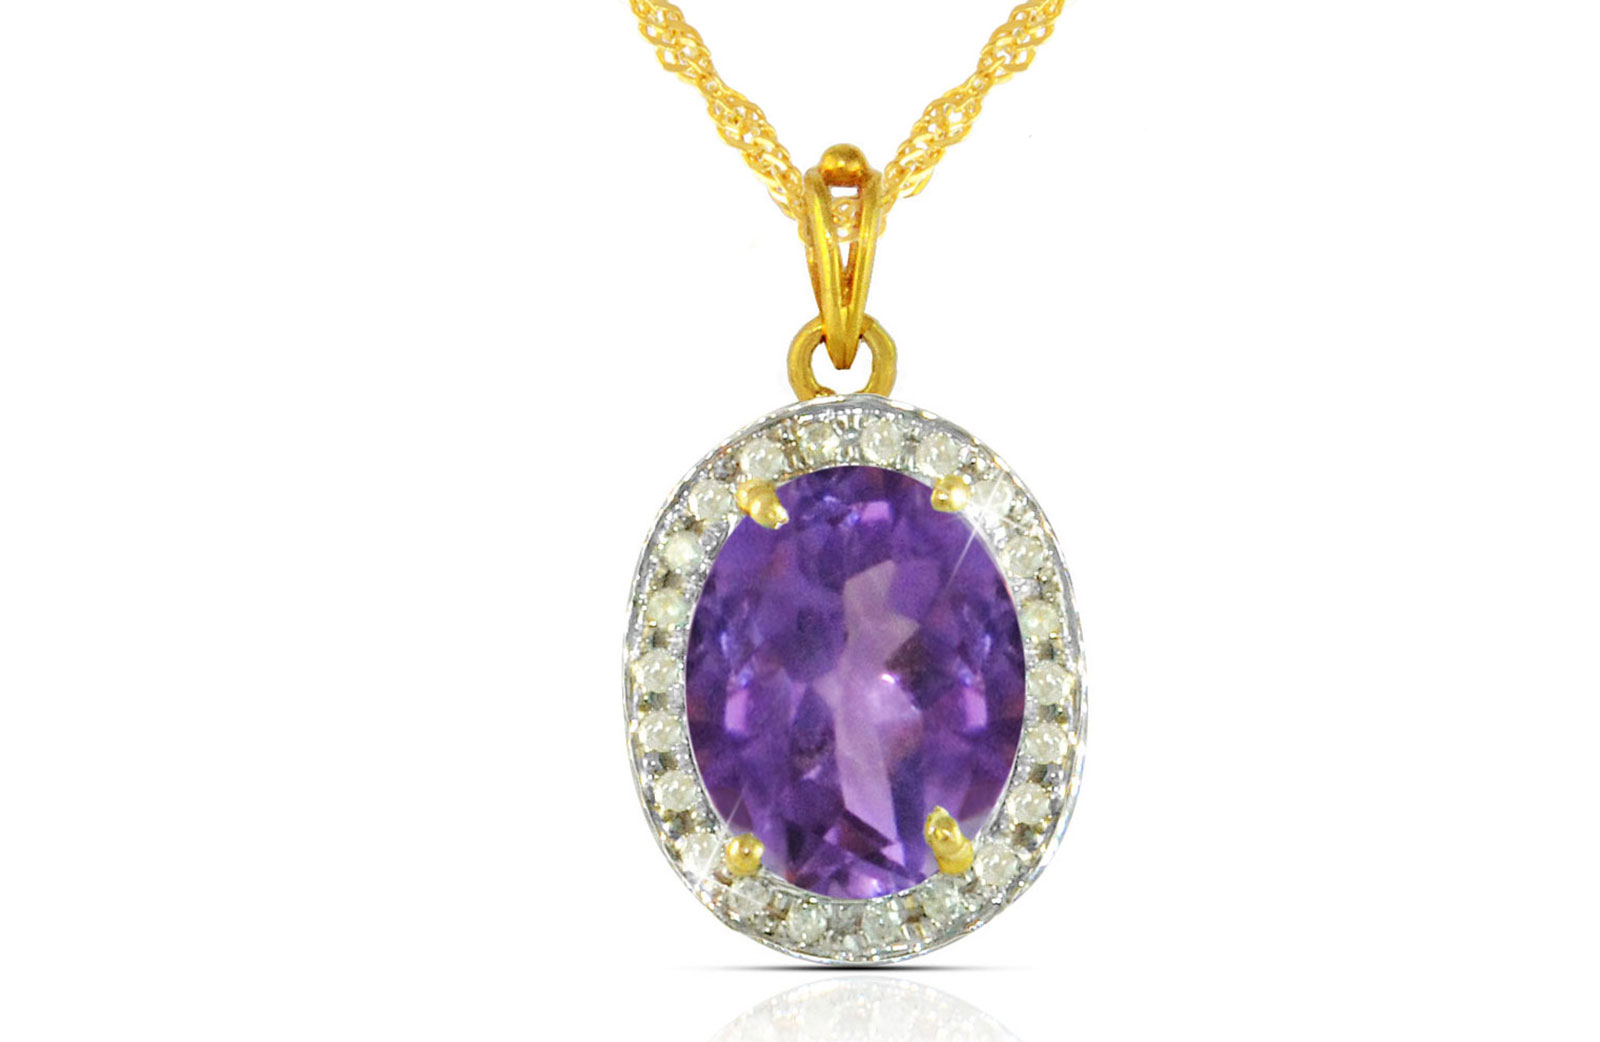 Vera Perla 18k  Gold 10mm Genuine Oval   Cut Amethyst 0.12Ct Genuine Diamonds Necklace